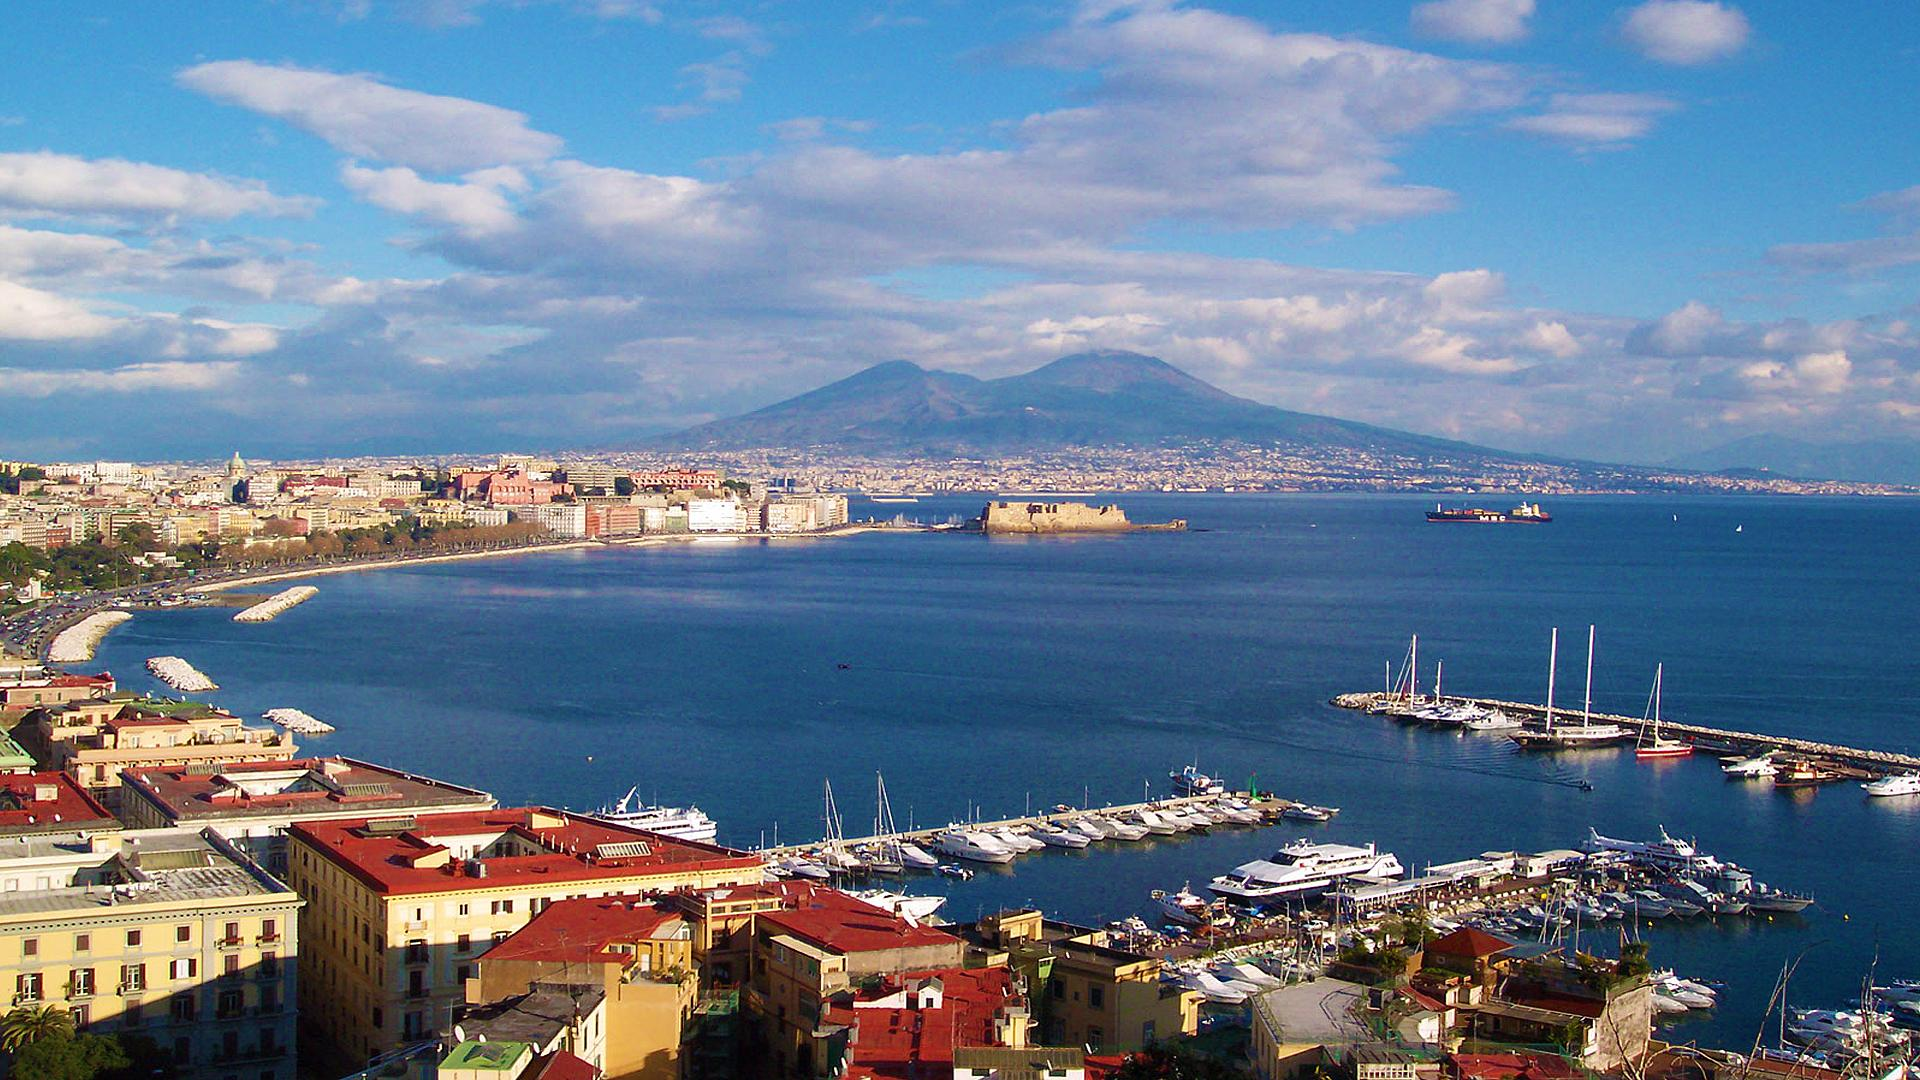 Napoli Italy Wallpaper Landscape Free Downloads